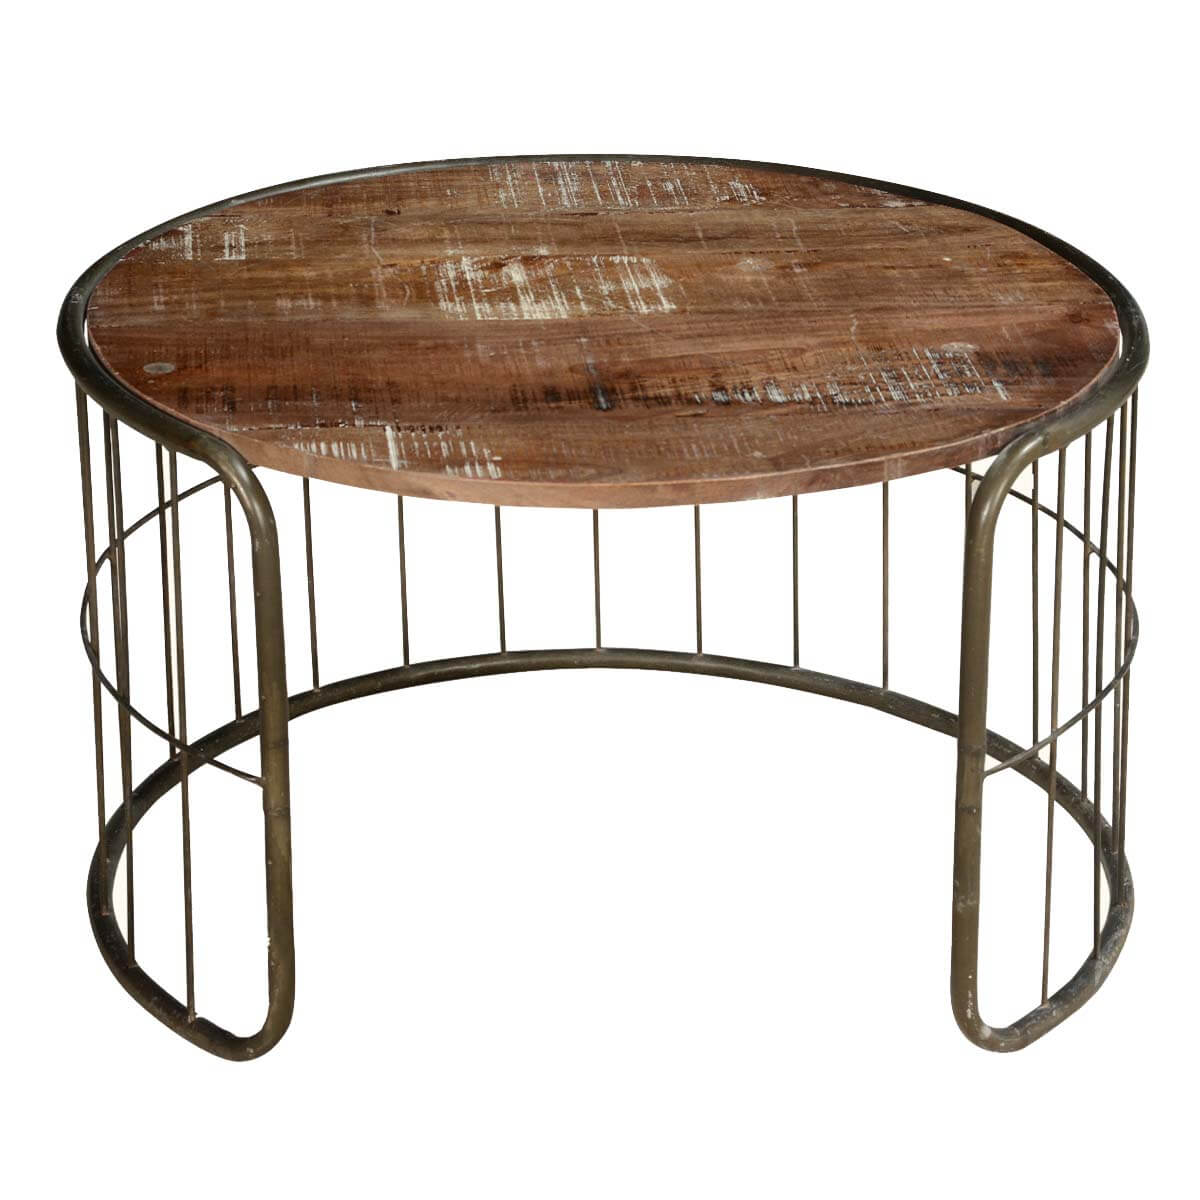 on the fence mango wood iron rustic 30 round coffee table. Black Bedroom Furniture Sets. Home Design Ideas